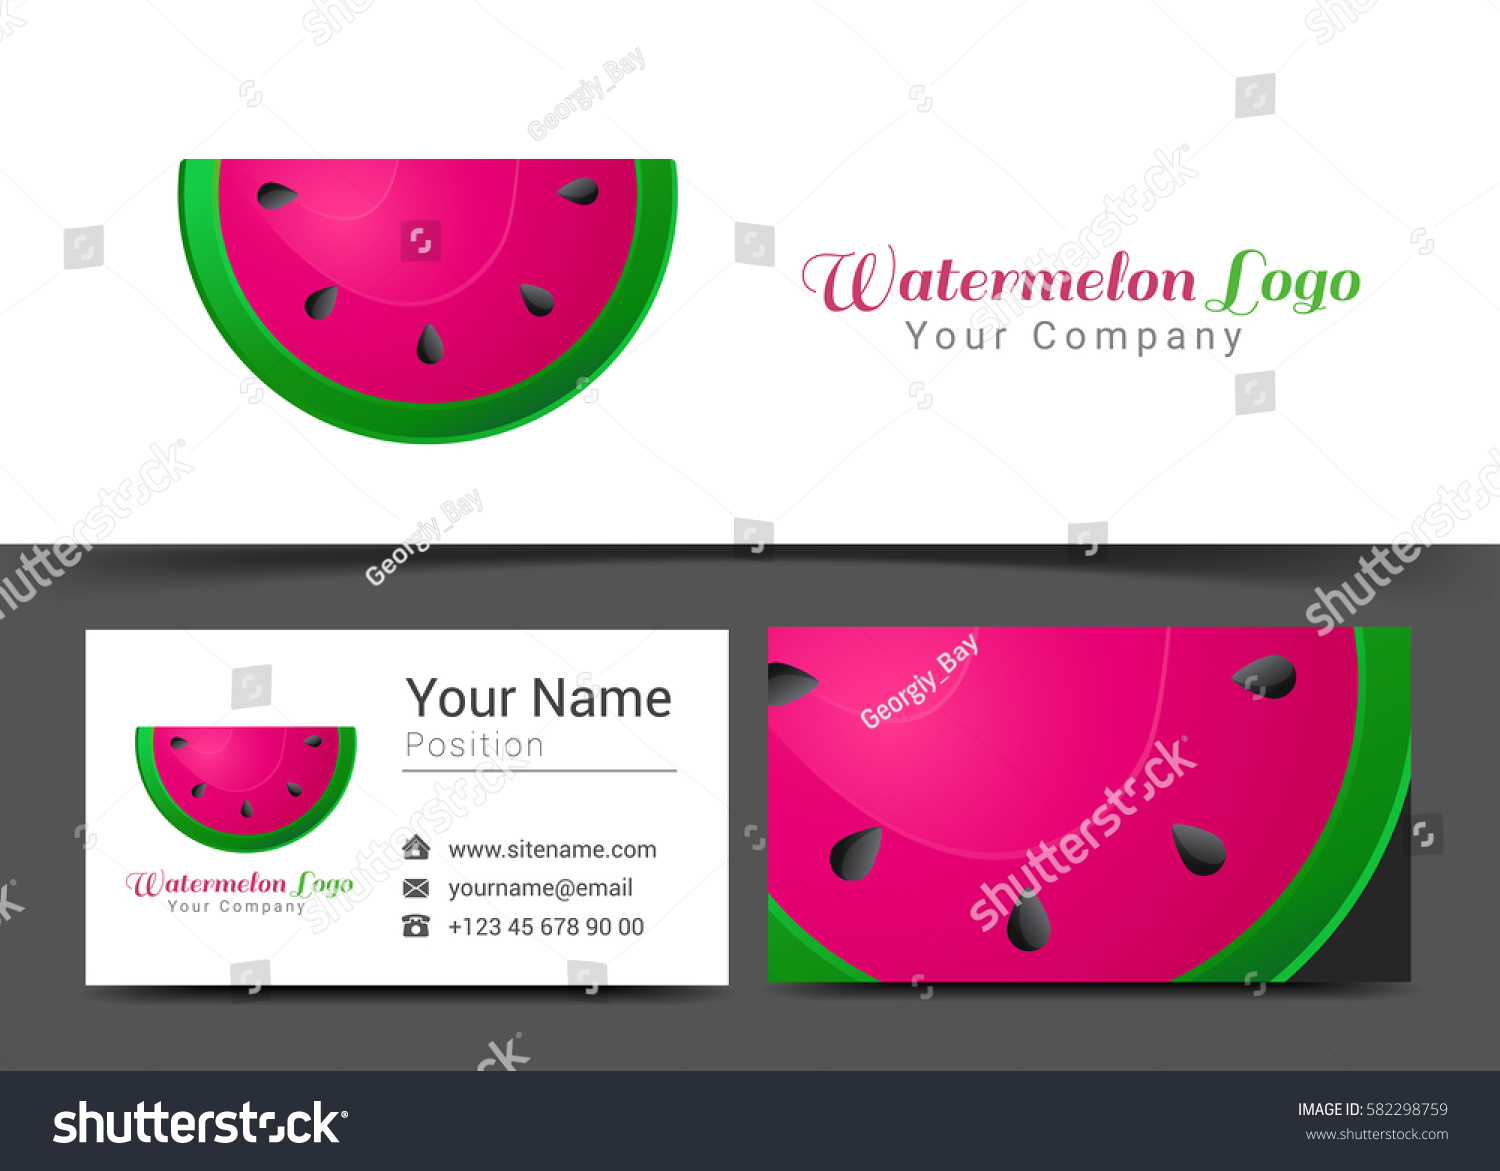 Watermelon corporate logo business card sign stock vector watermelon corporate logo and business card sign template creative design with colorful logotype visual identity magicingreecefo Images